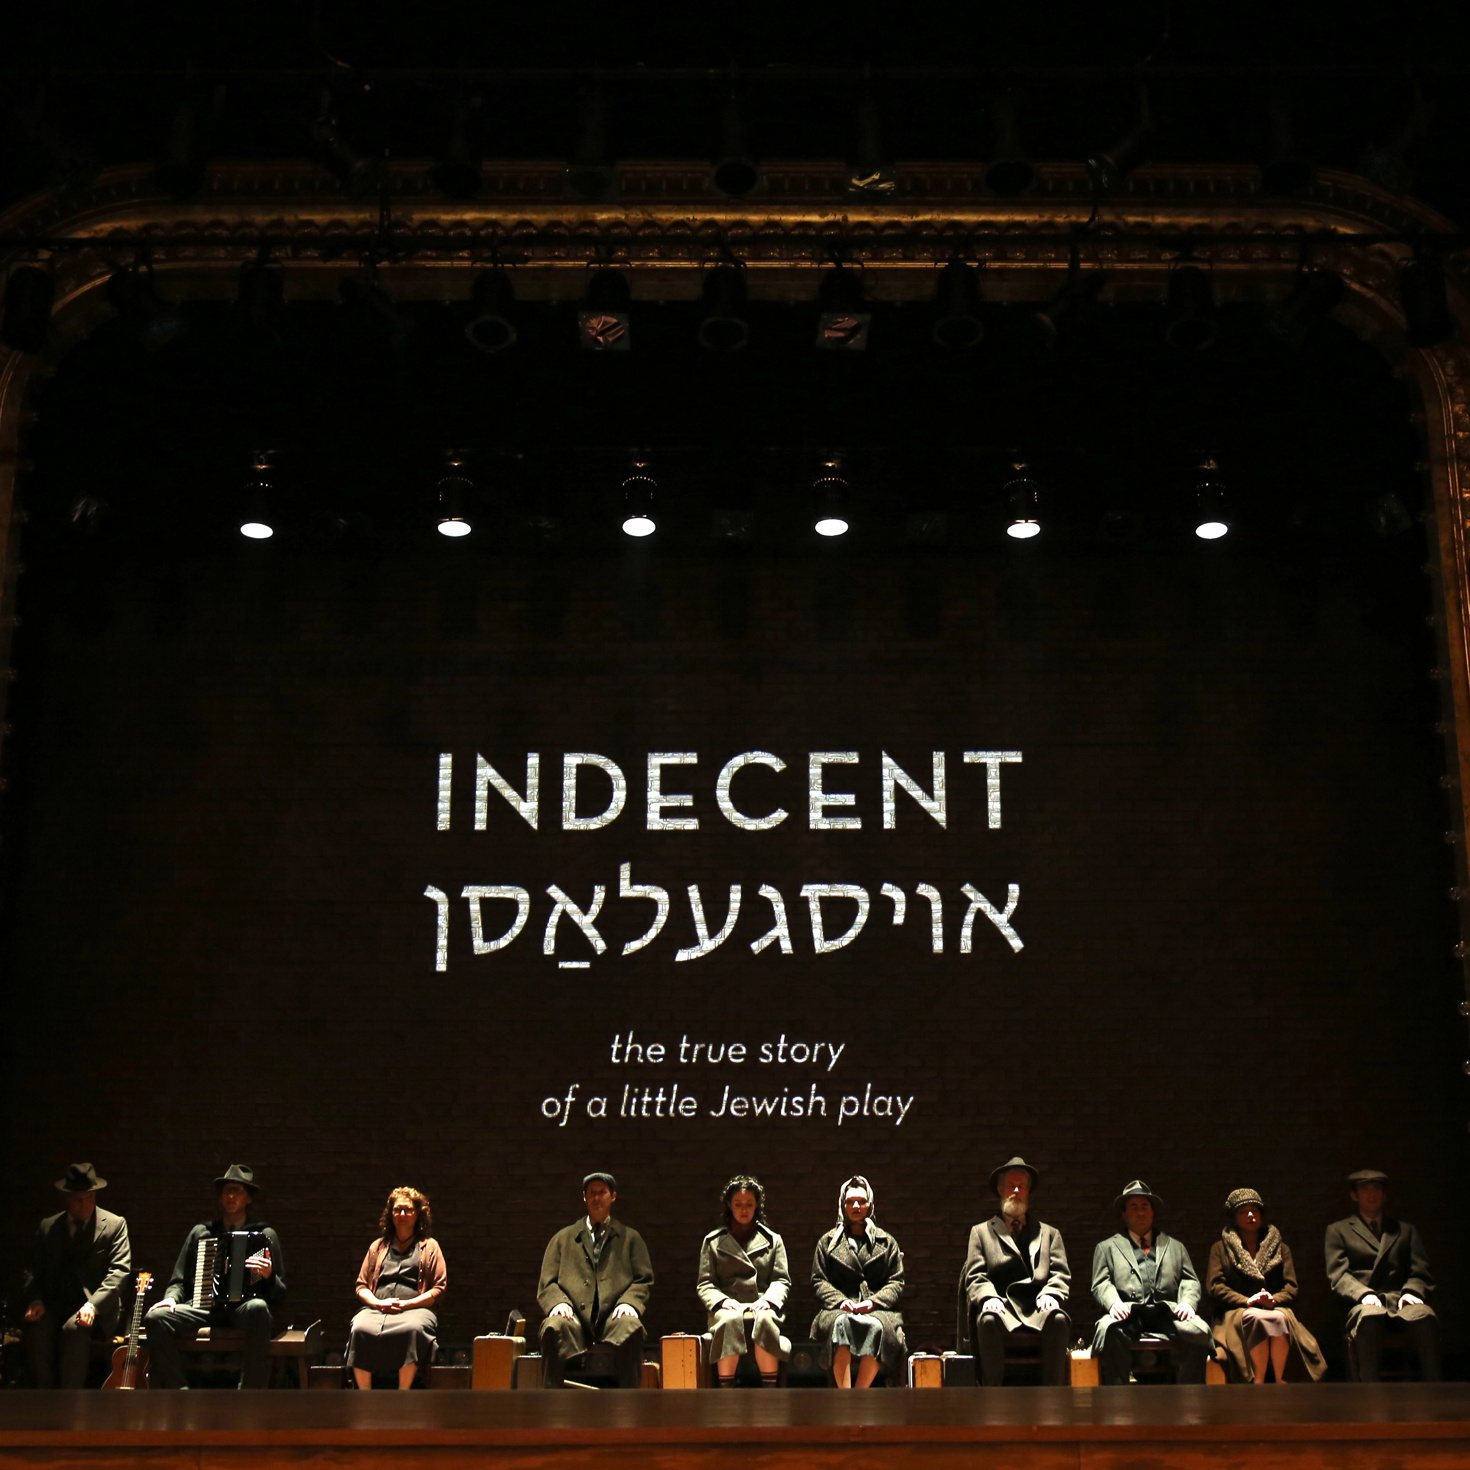 Director Rebecca Taichman to Repeat Tony-Winning Work for European Premiere of Indecent at Menier | Broadway Buzz | Broadway.com